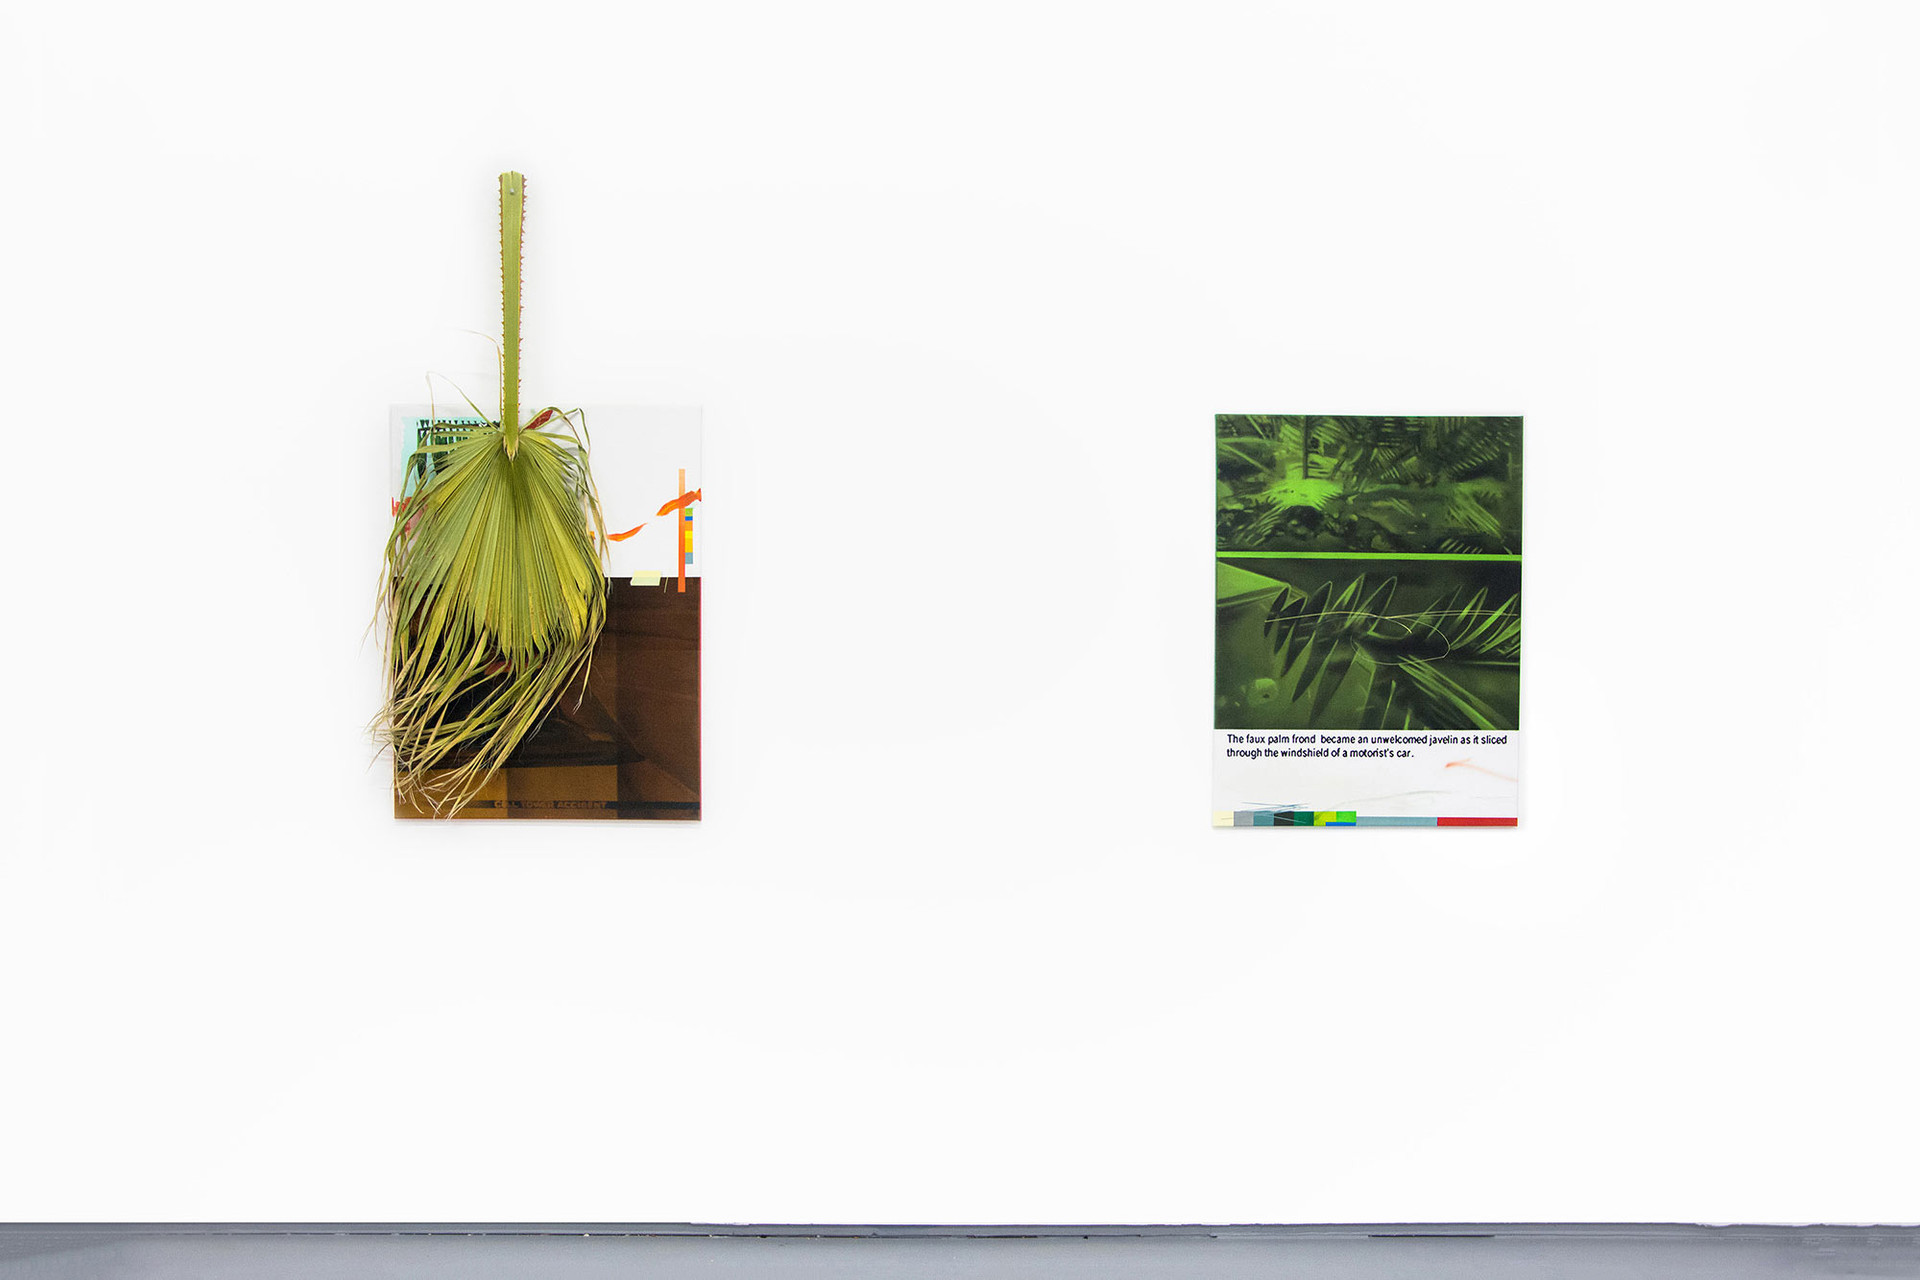 O+G Accident diptych